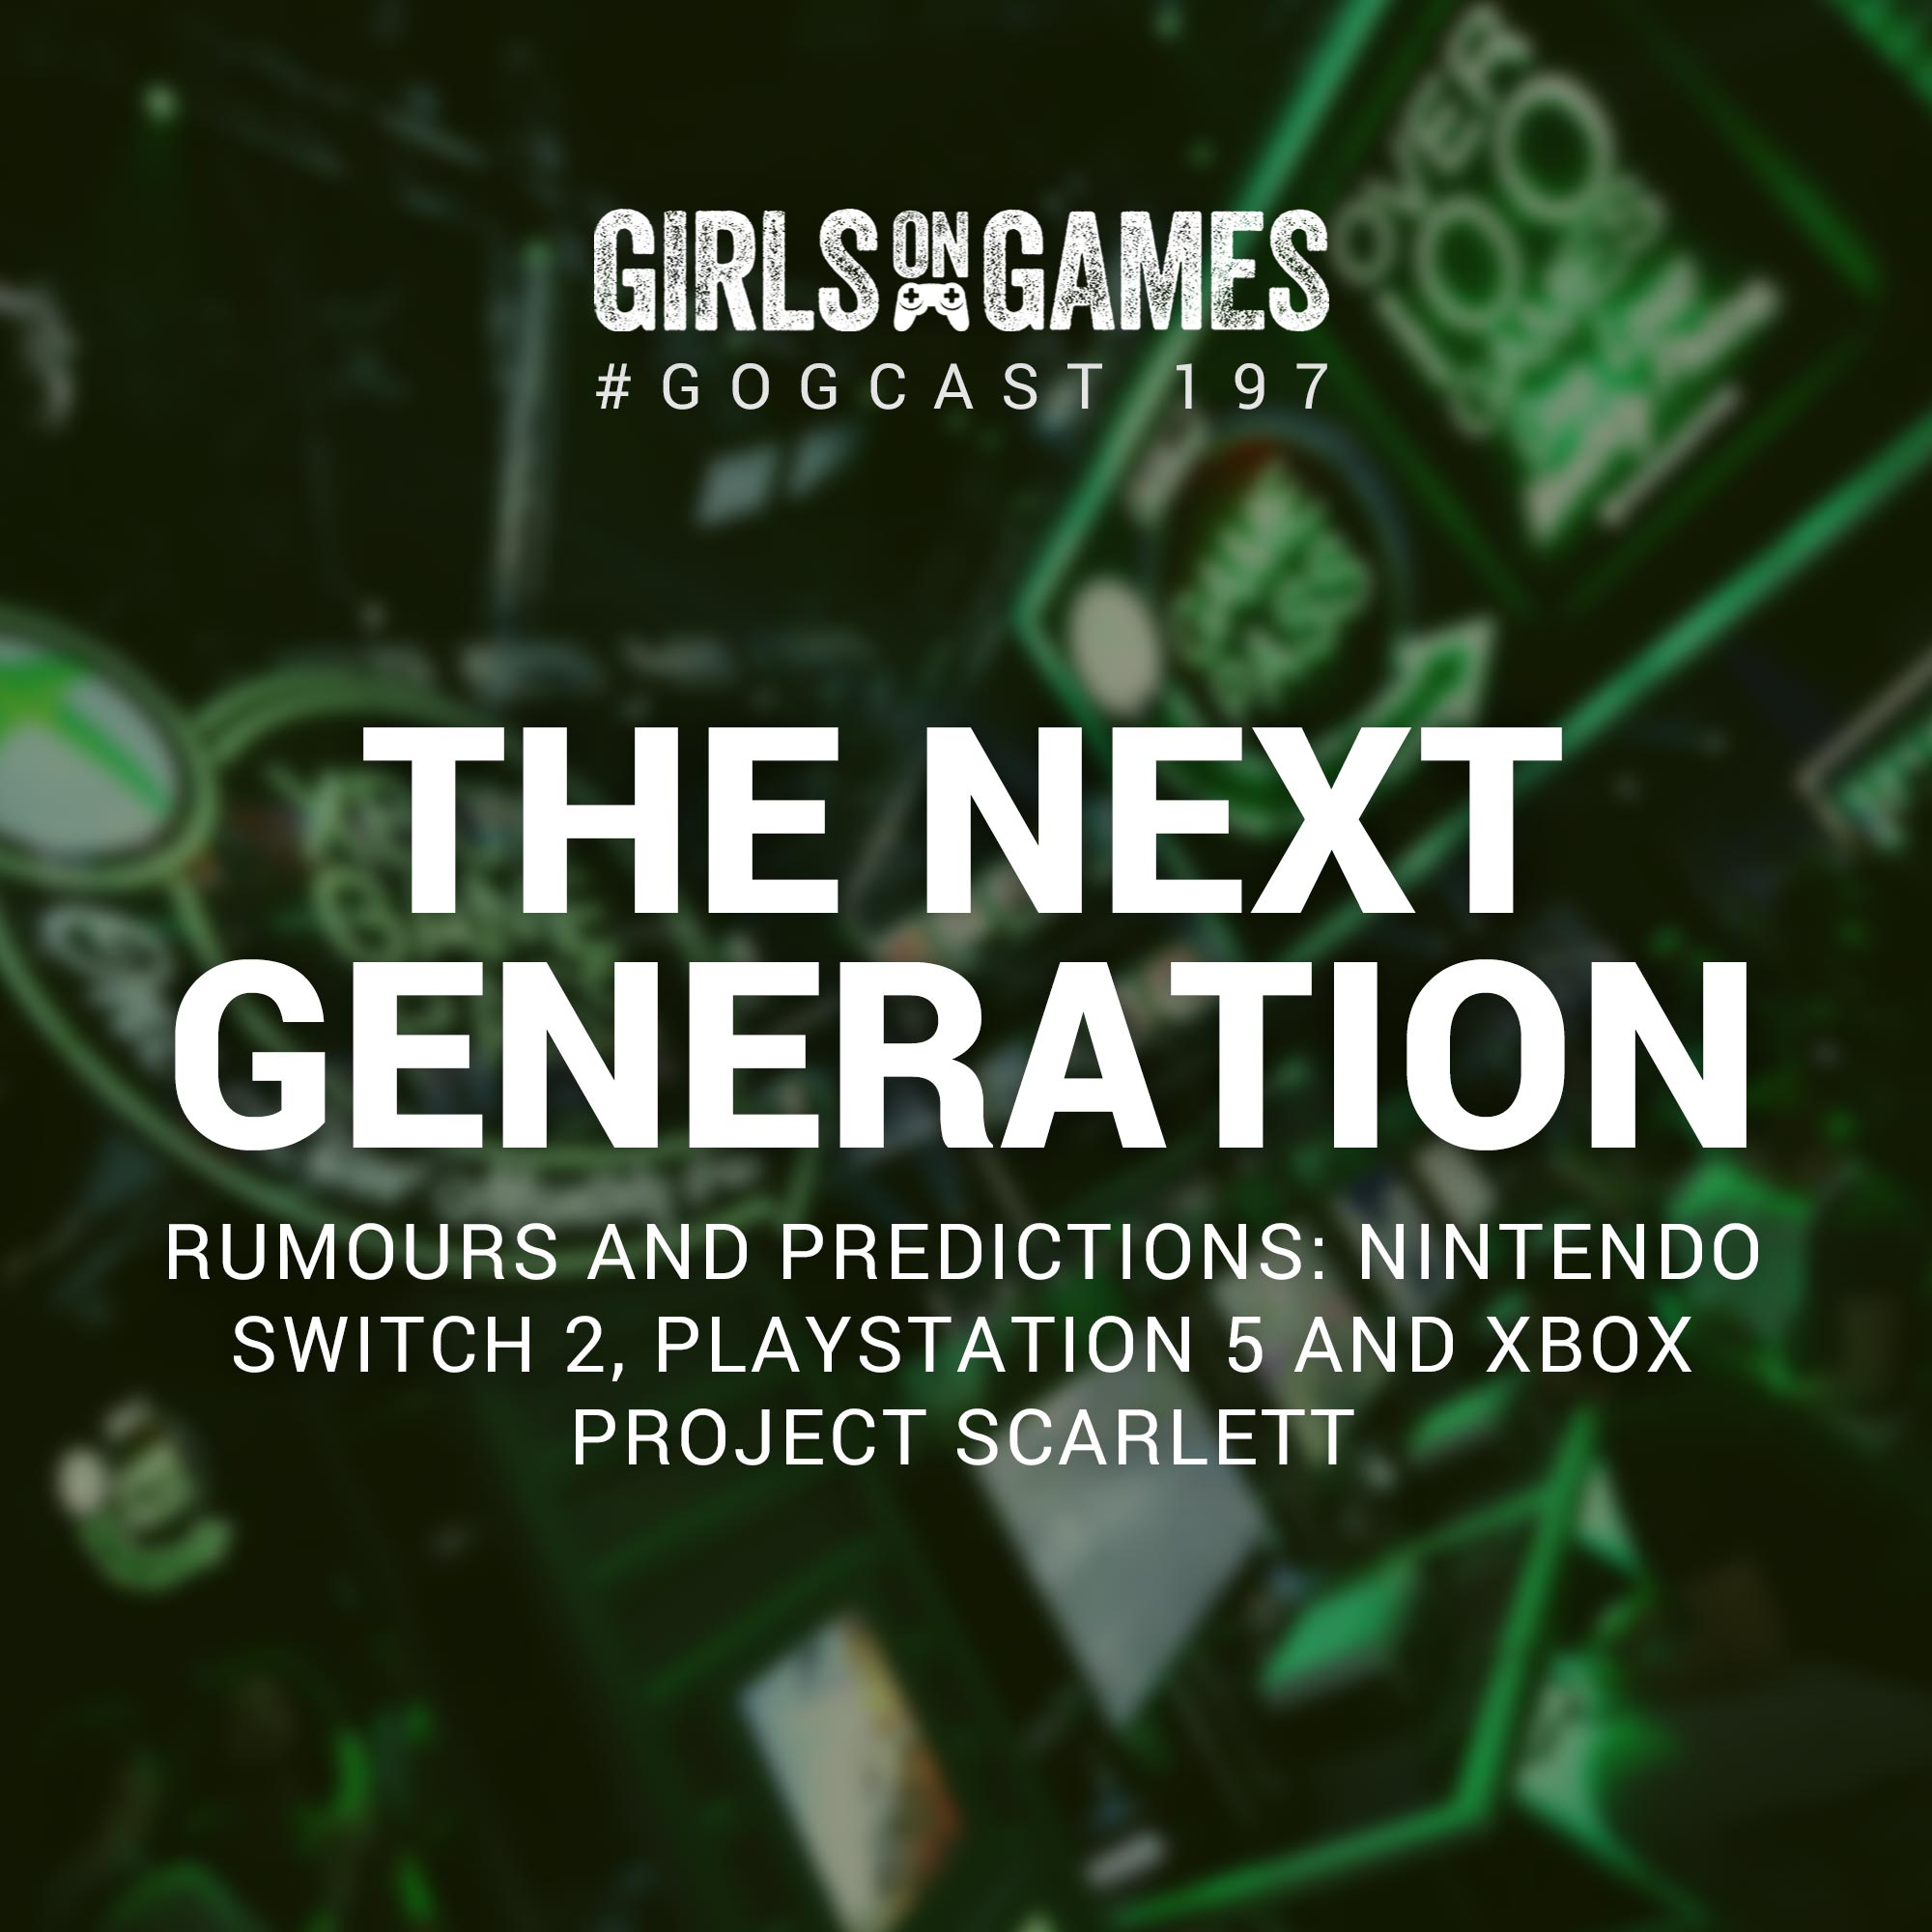 The Next Generation: Rumours and Predictions - GoGCast 197